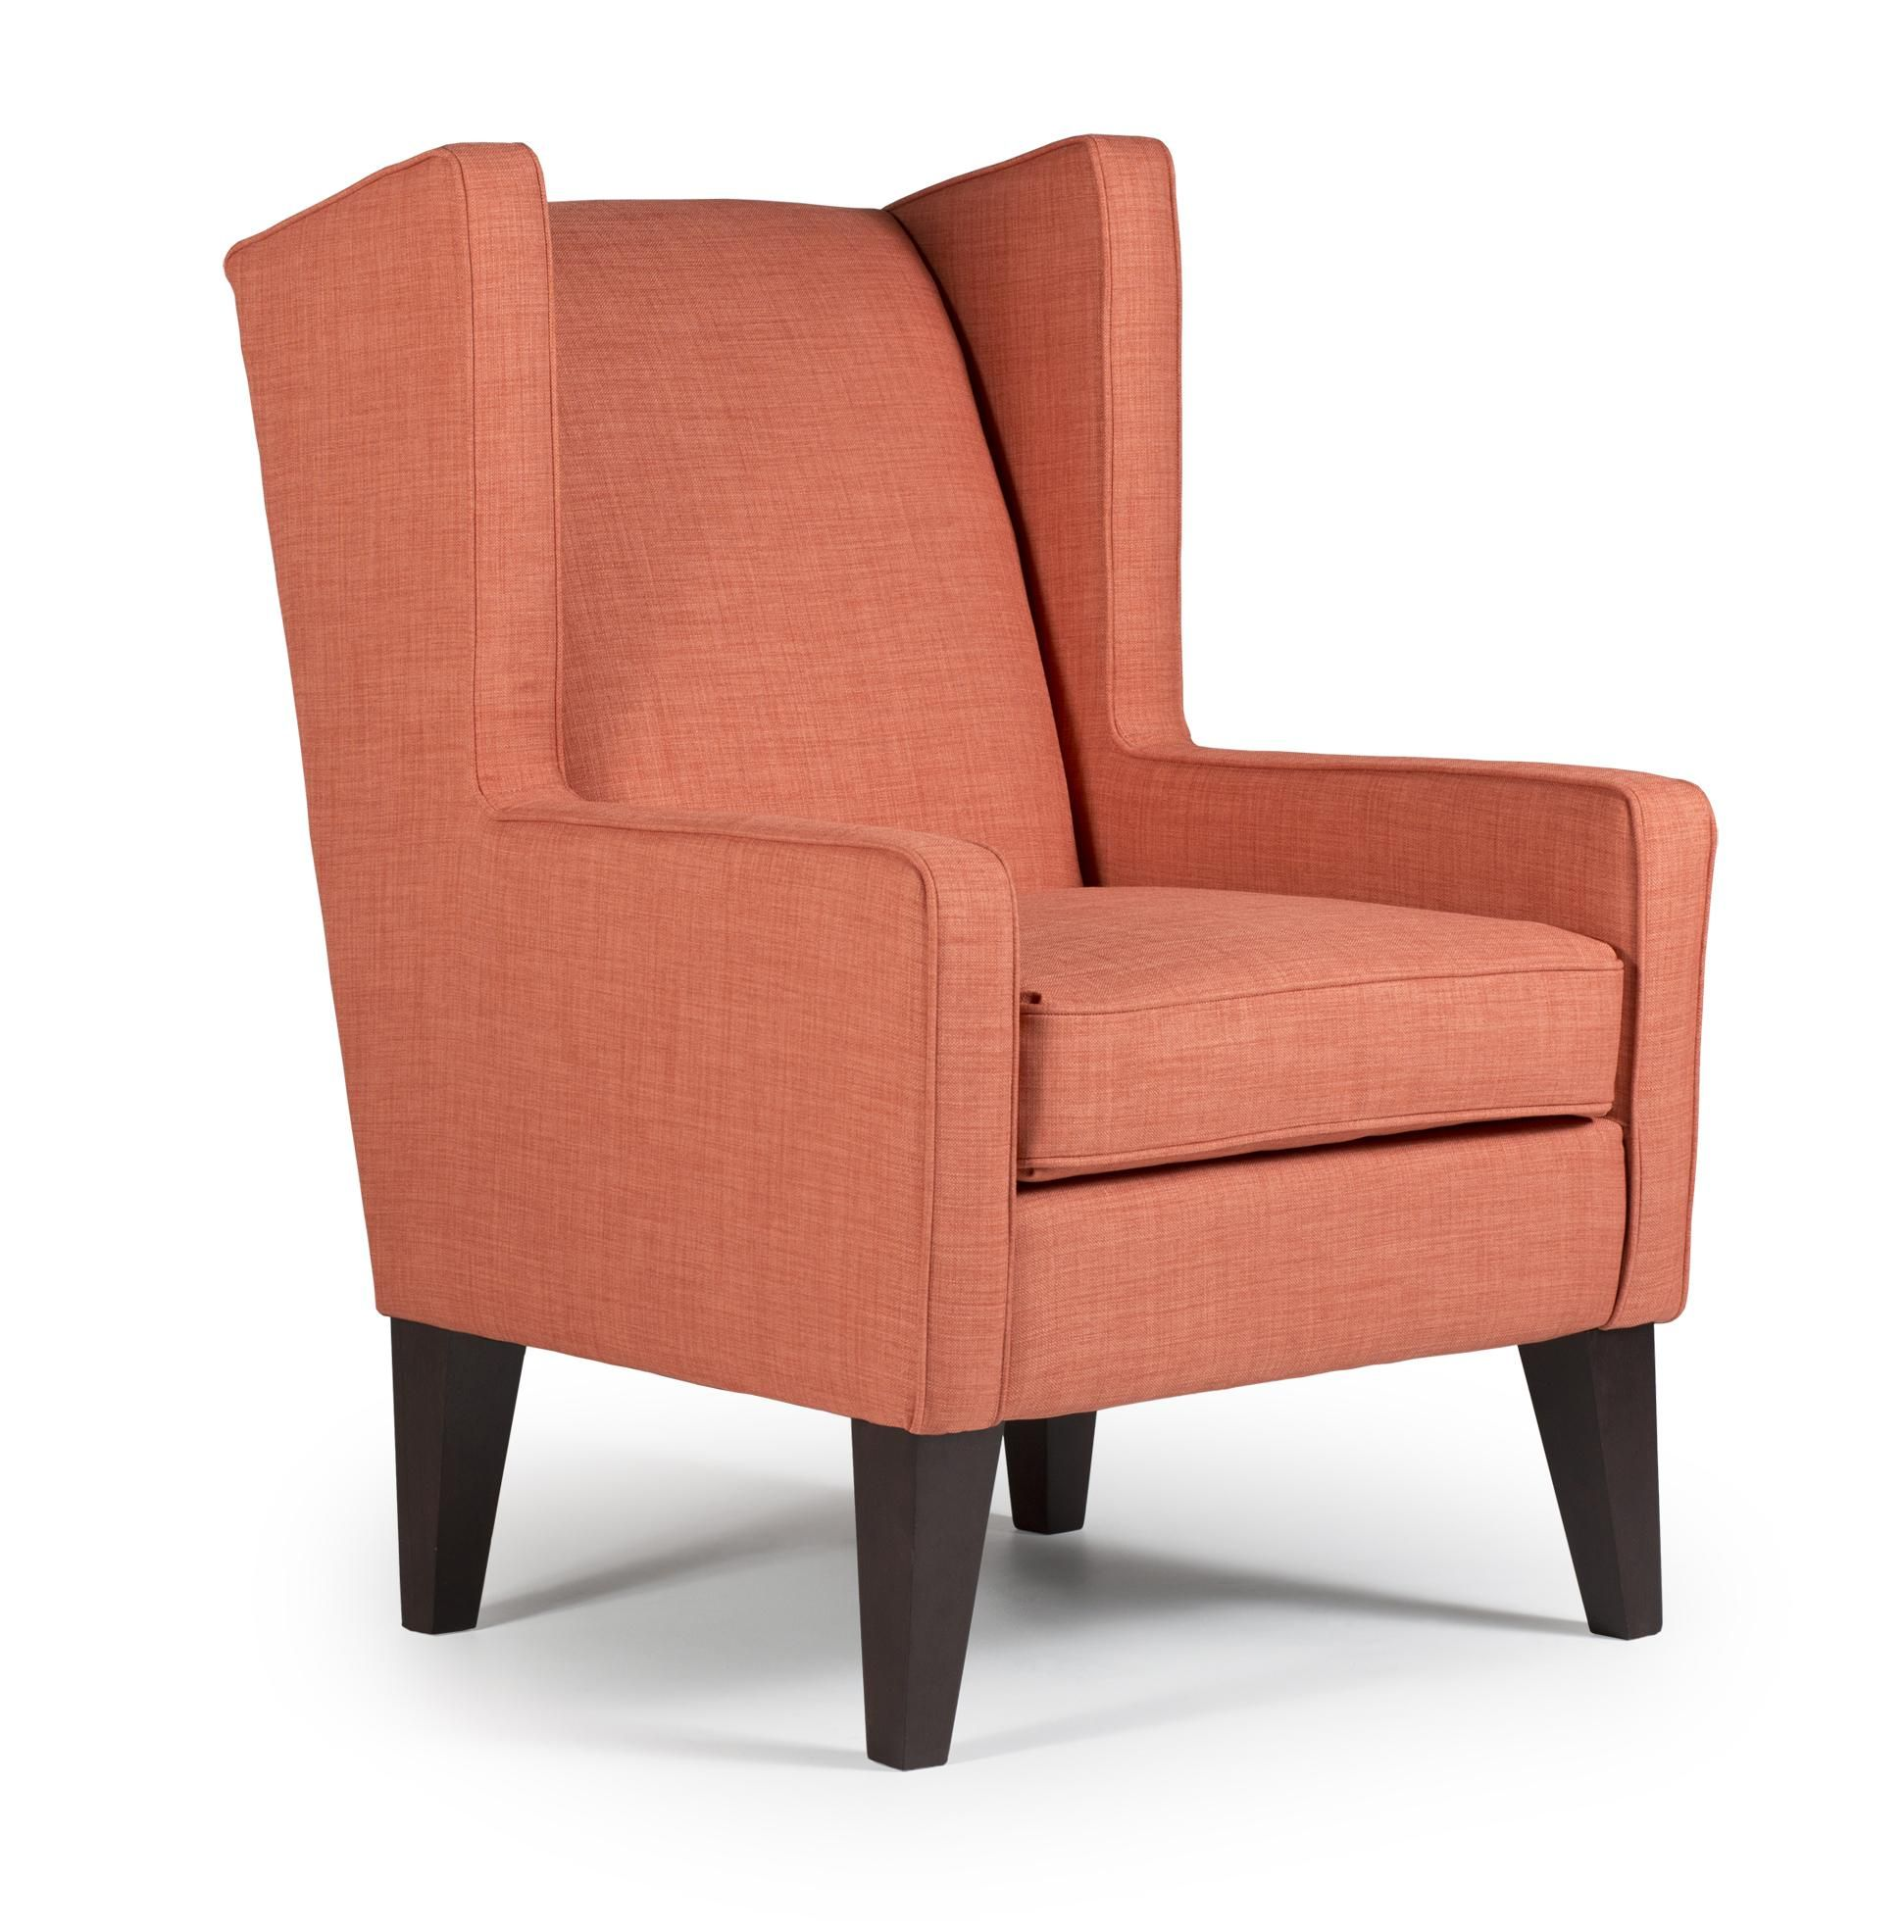 Nice Best Home Furnishings Chairs   Wing Back Wing Chair   Item Number: 7170